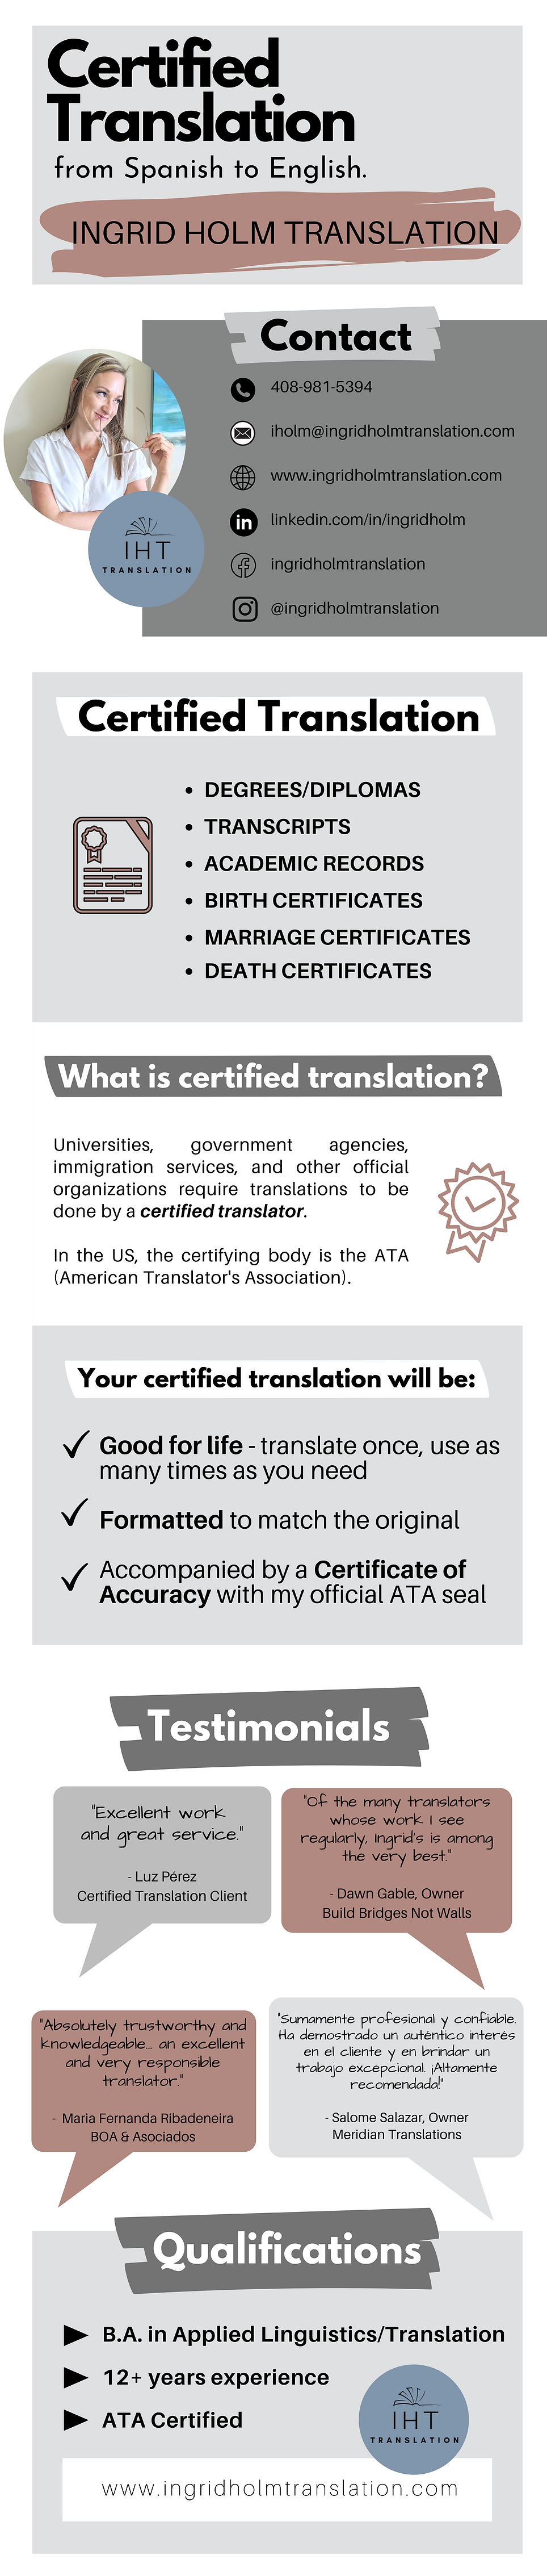 Certified Translation.png